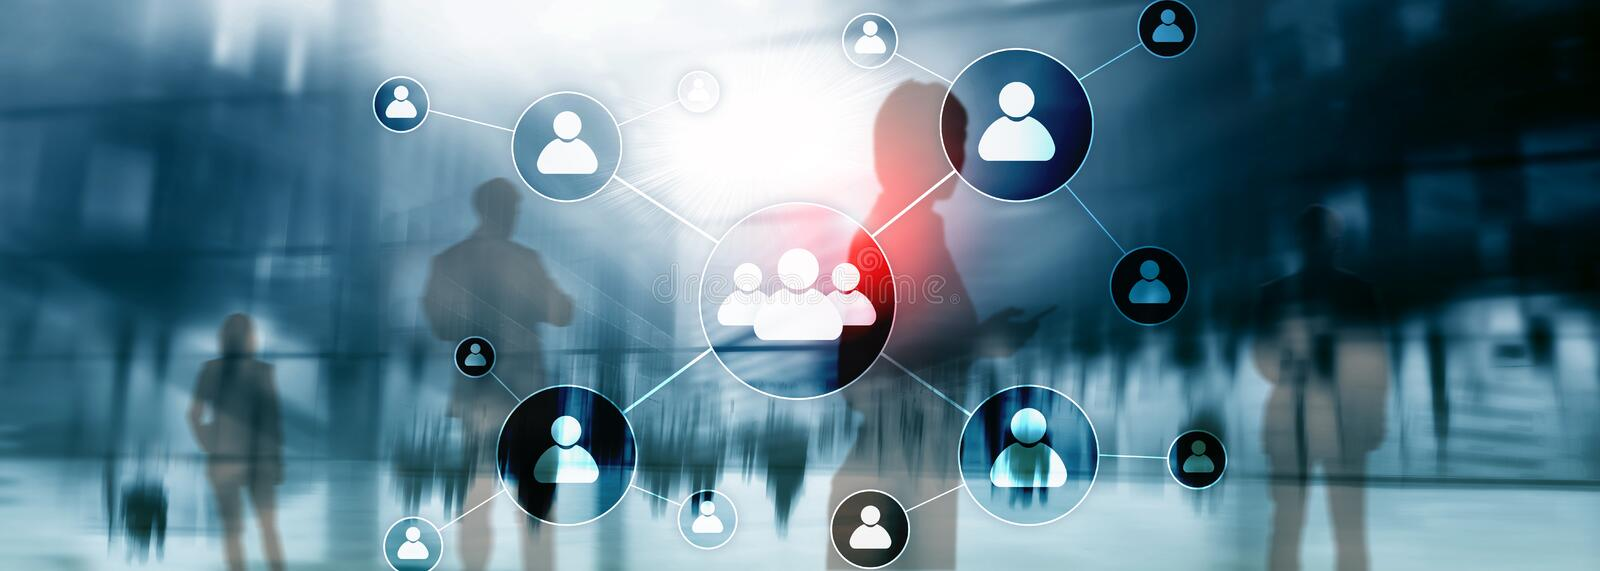 HR - Human resources management concept on blurred business center background. HR - Human resources management concept on blurred business center background stock photo